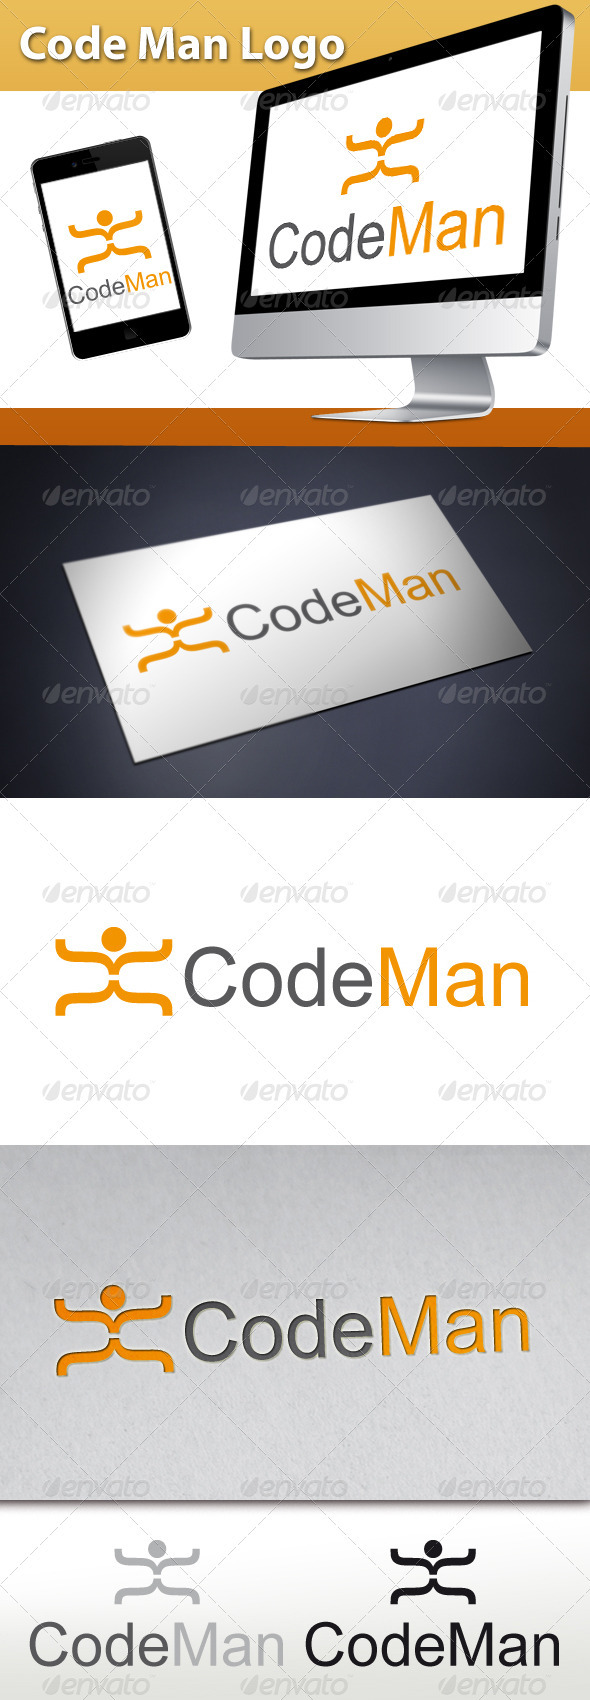 GraphicRiver Code Man Logo 3334281